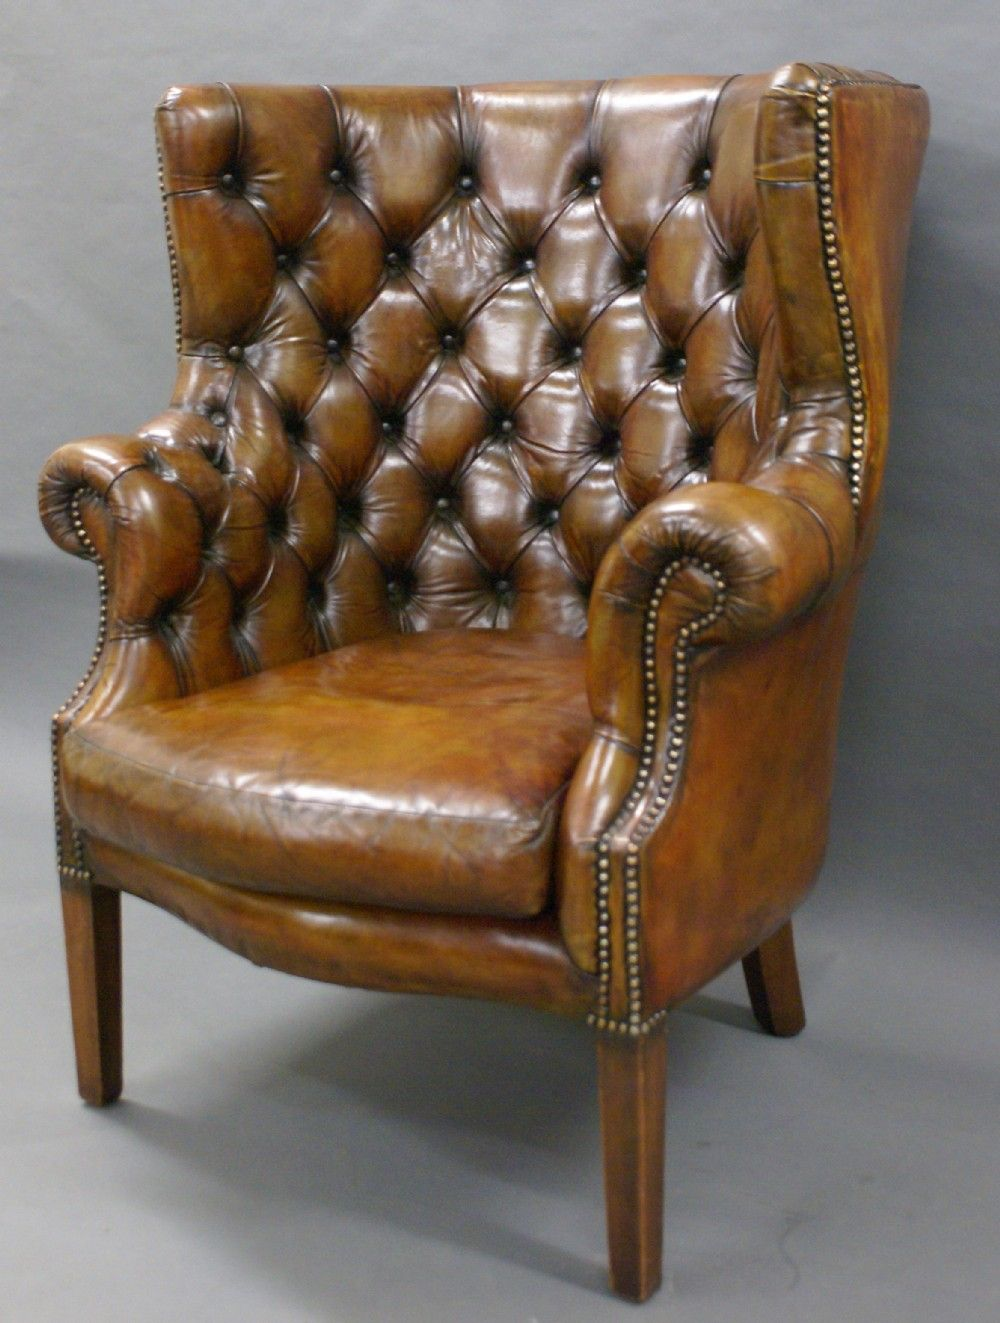 A Georgian Revival Leather Upholstered Barrel Back Arm Chair